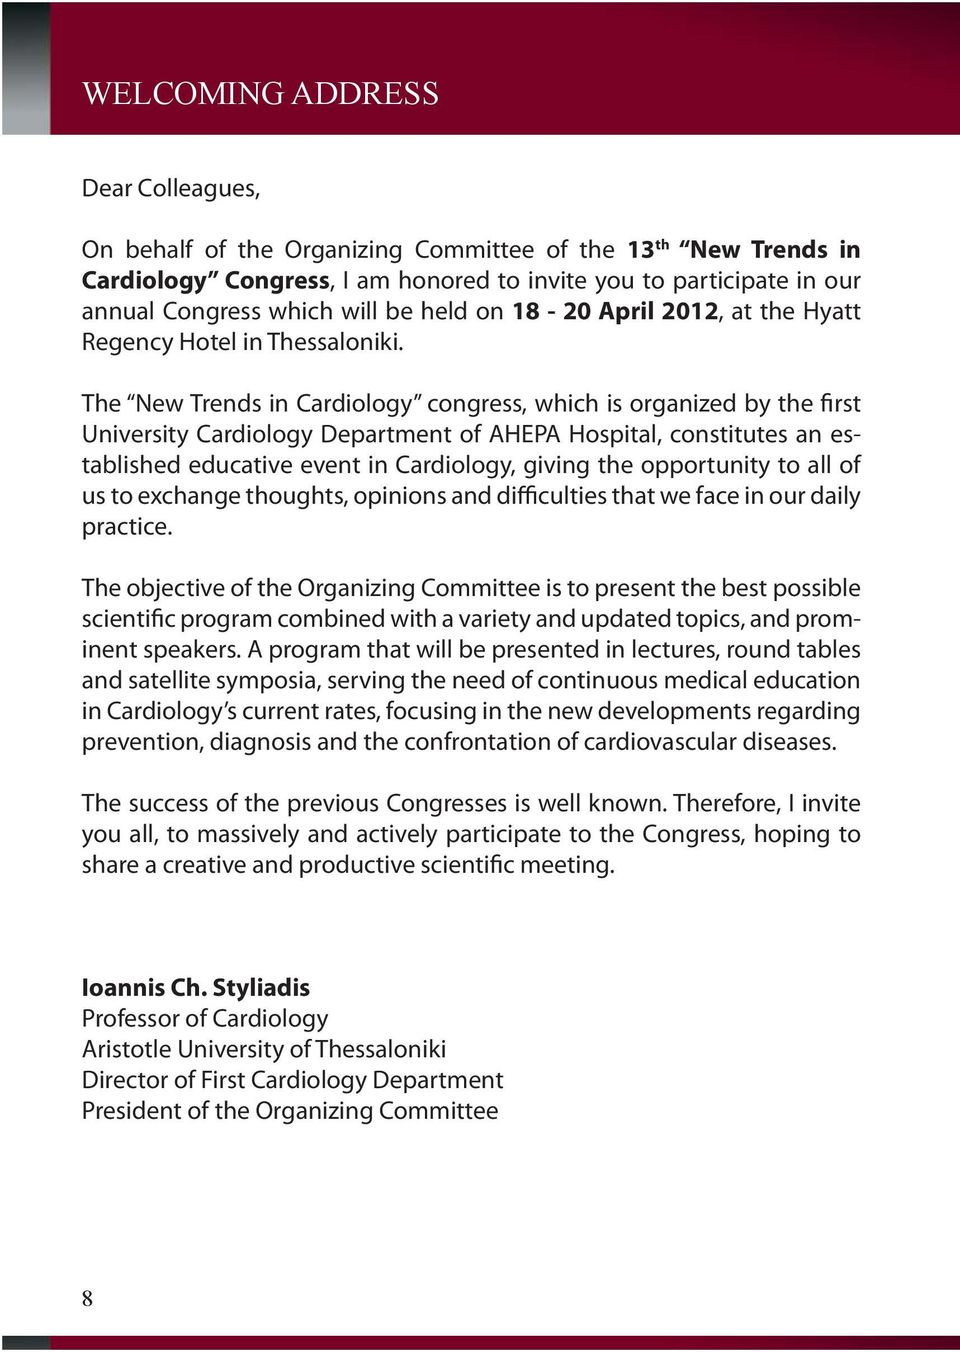 The New Trends in Cardiology congress, which is organized by the first University Cardiology Department of AHEPA Hospital, constitutes an established educative event in Cardiology, giving the